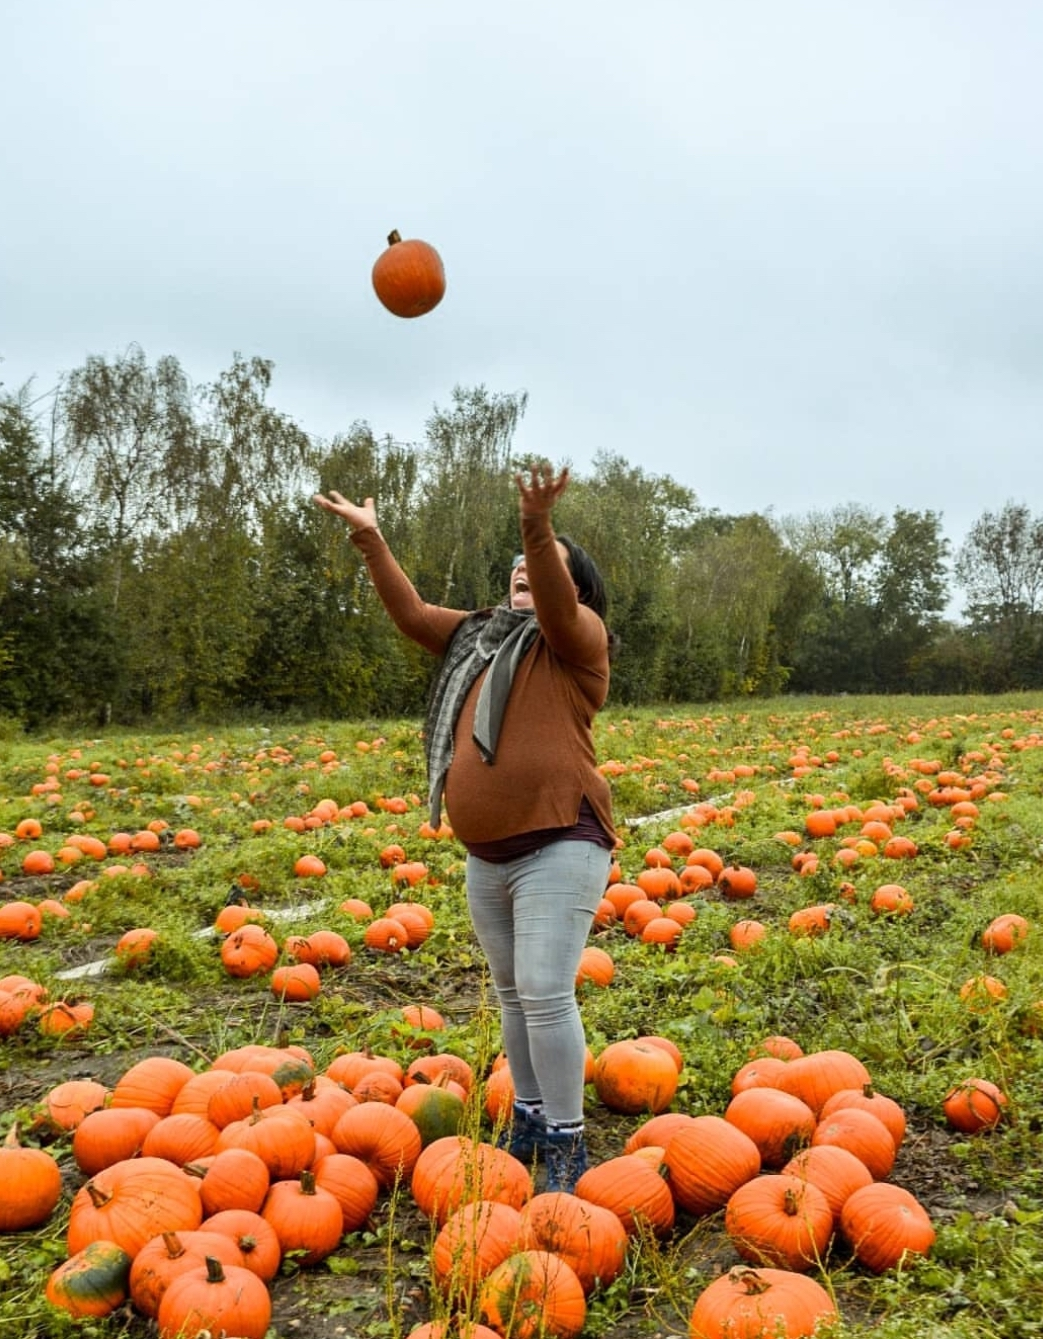 PREGNANT | 9 Months in the Making - Pumpkin Picking,Pumpkin picking, garson's farm esher, garson's farm, pick your own, Pregnant, Pregnancy, Pregnancy Announcement, Preggo, 9 Months Pregnant,Garson's Pick Your Own Farm, Garson's Farm Shop, Glad you got home before, Parenting, Motherhood, Parenting Blogger, Fay Simone